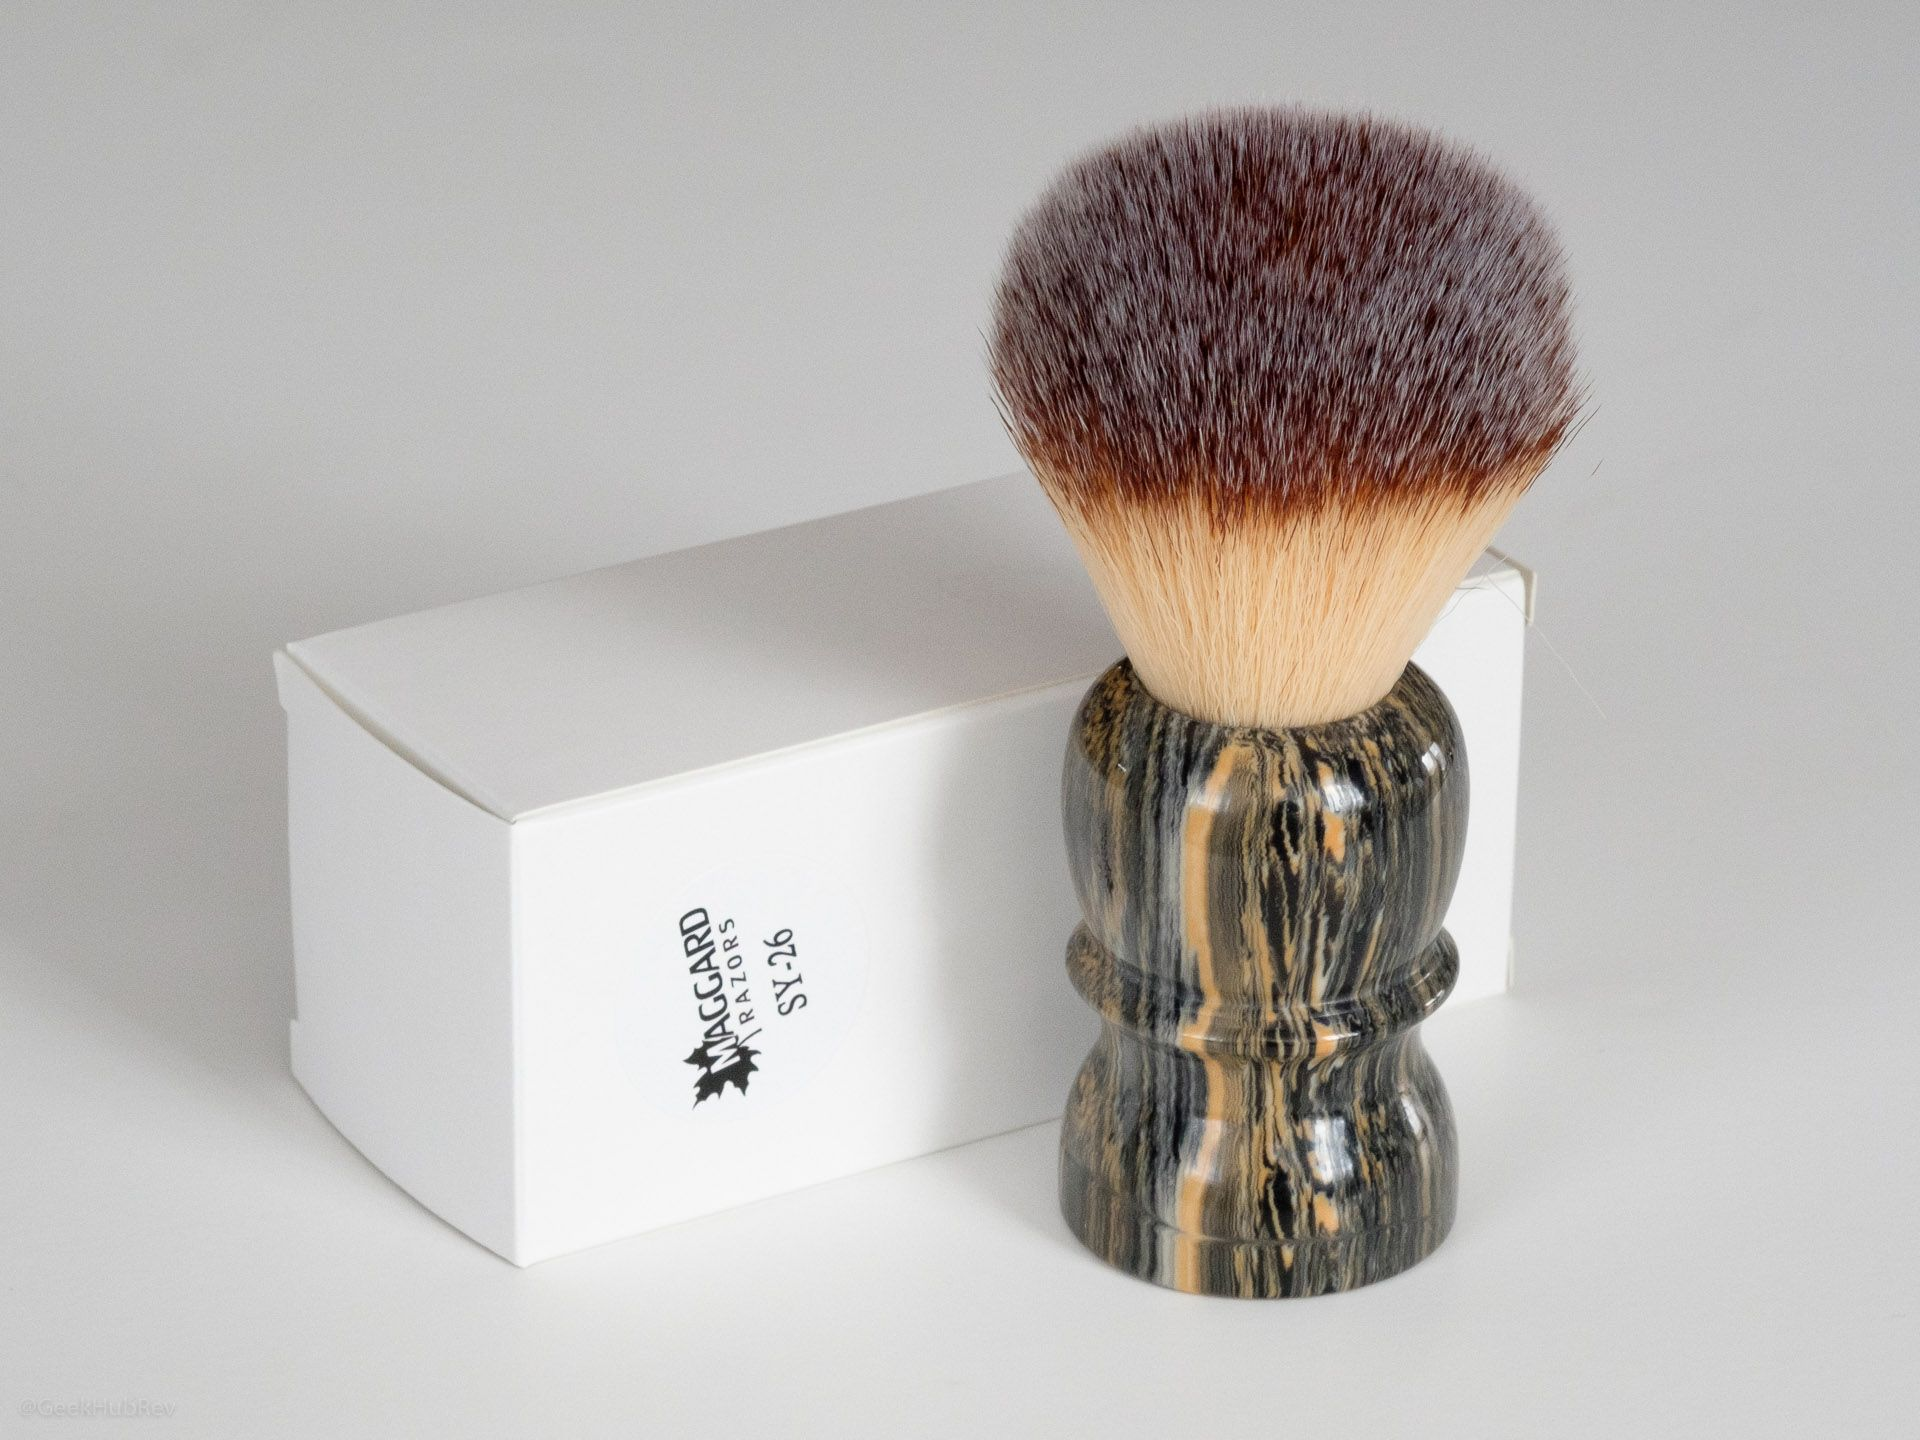 You are currently viewing Maggard Razors SY-26 26mm Synthetic Shaving Brush, Granite Handle – recenzja syntetycznego pędzla do golenia